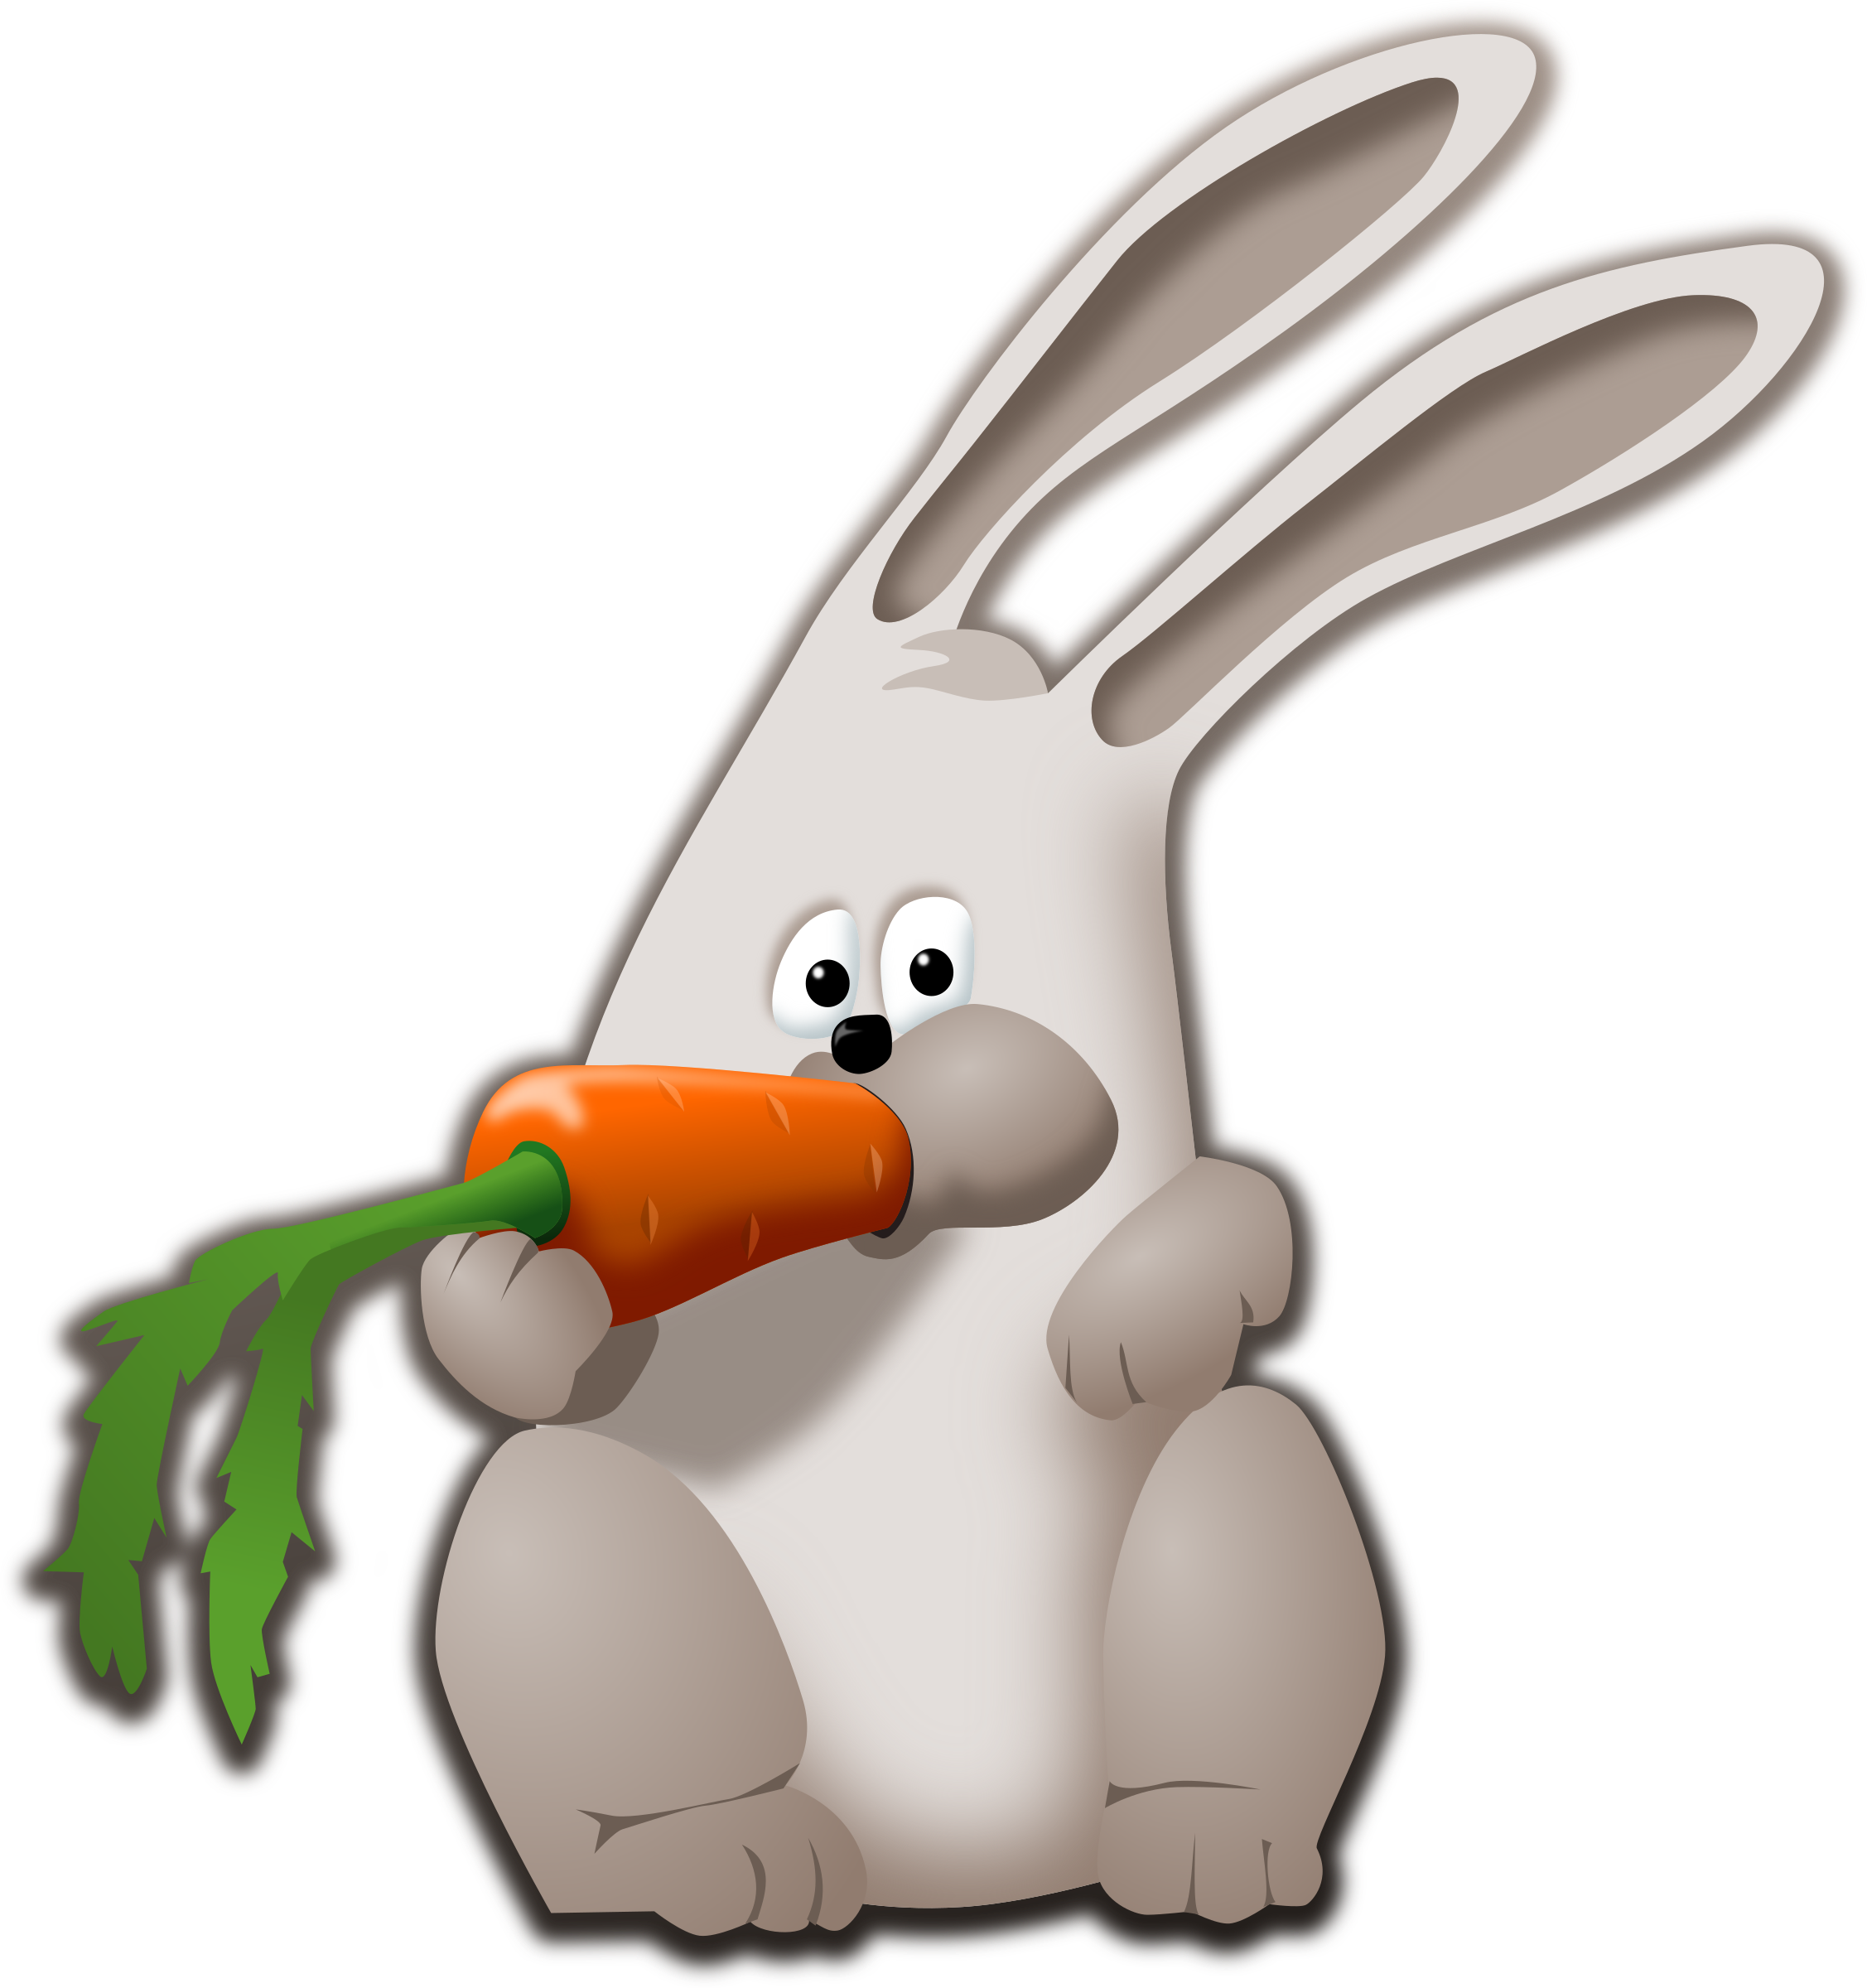 bunny eating carrot by tzunghaor